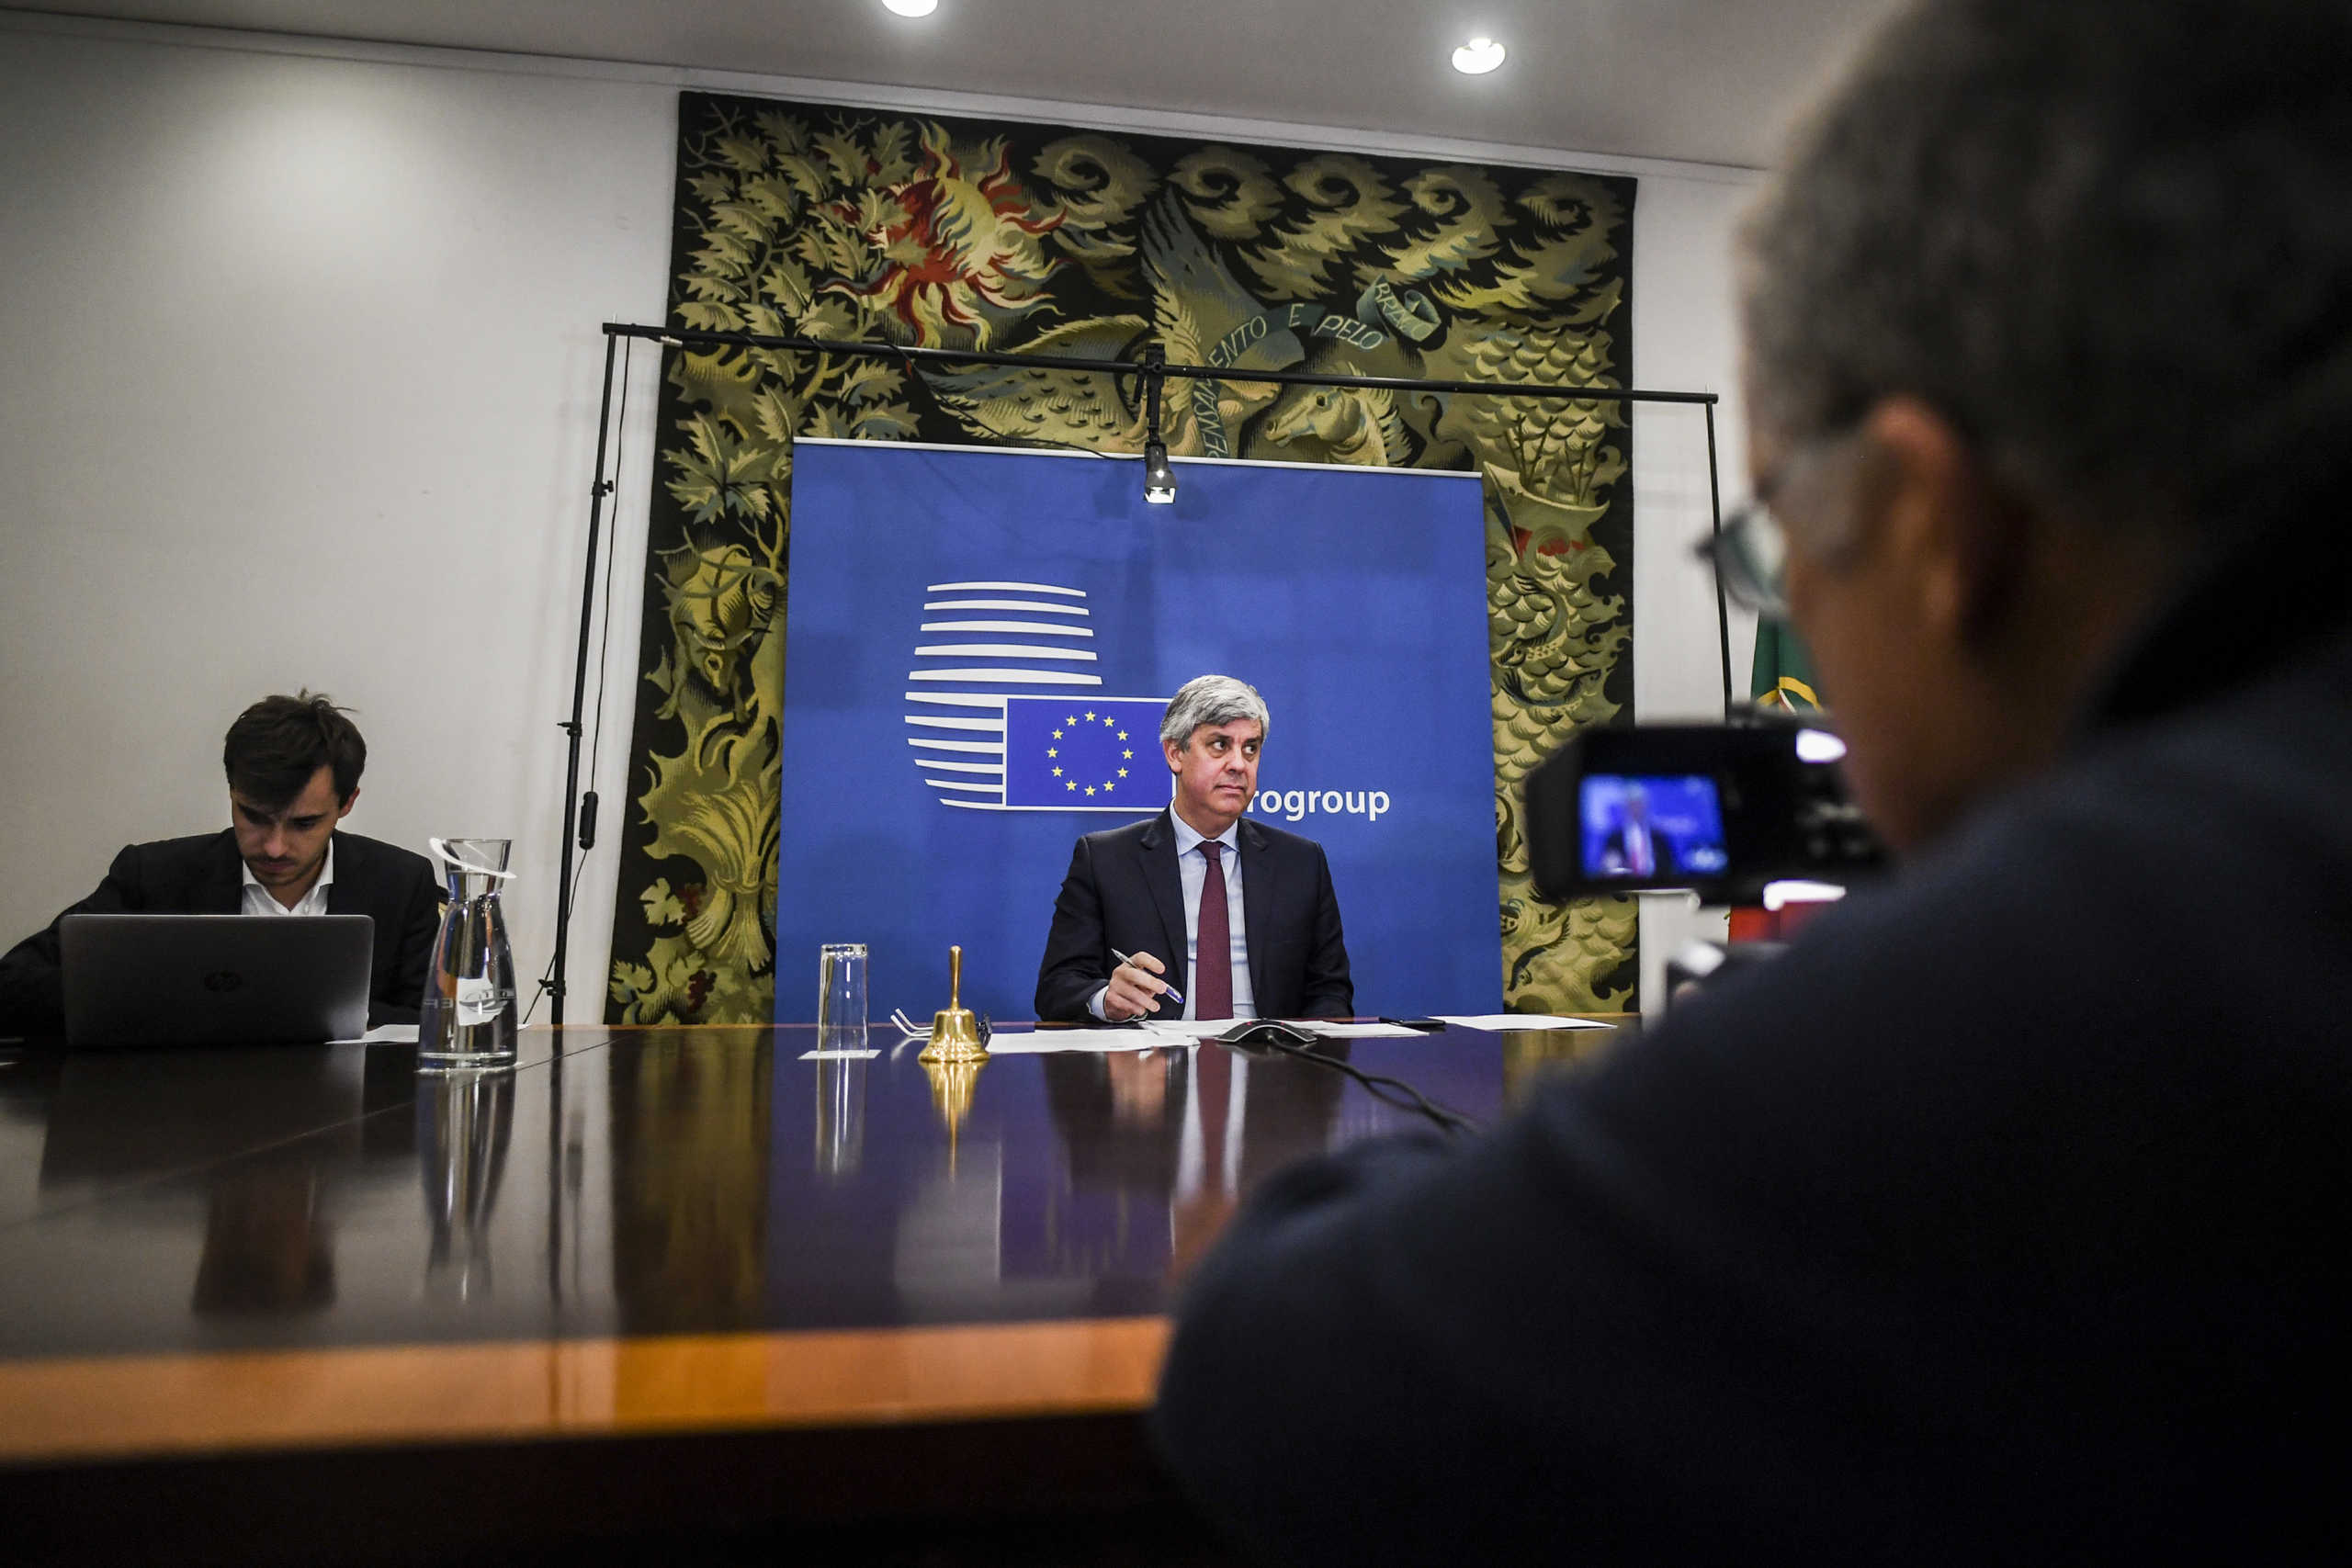 Eurogroup - Reuters